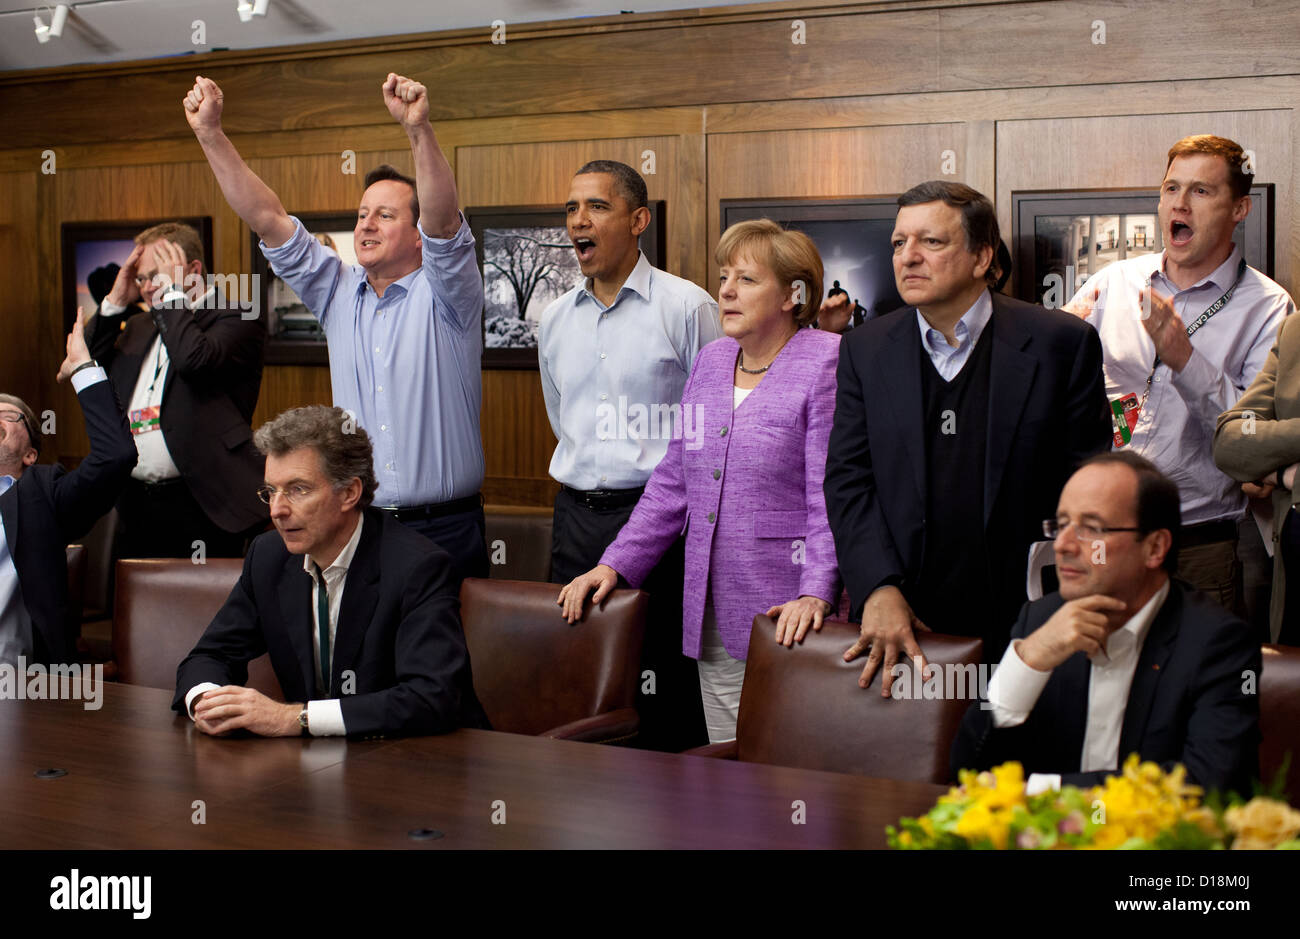 Prime Minister David Cameron of the United Kingdom, President Barack Obama, Chancellor Angela Merkel of Germany, - Stock Image